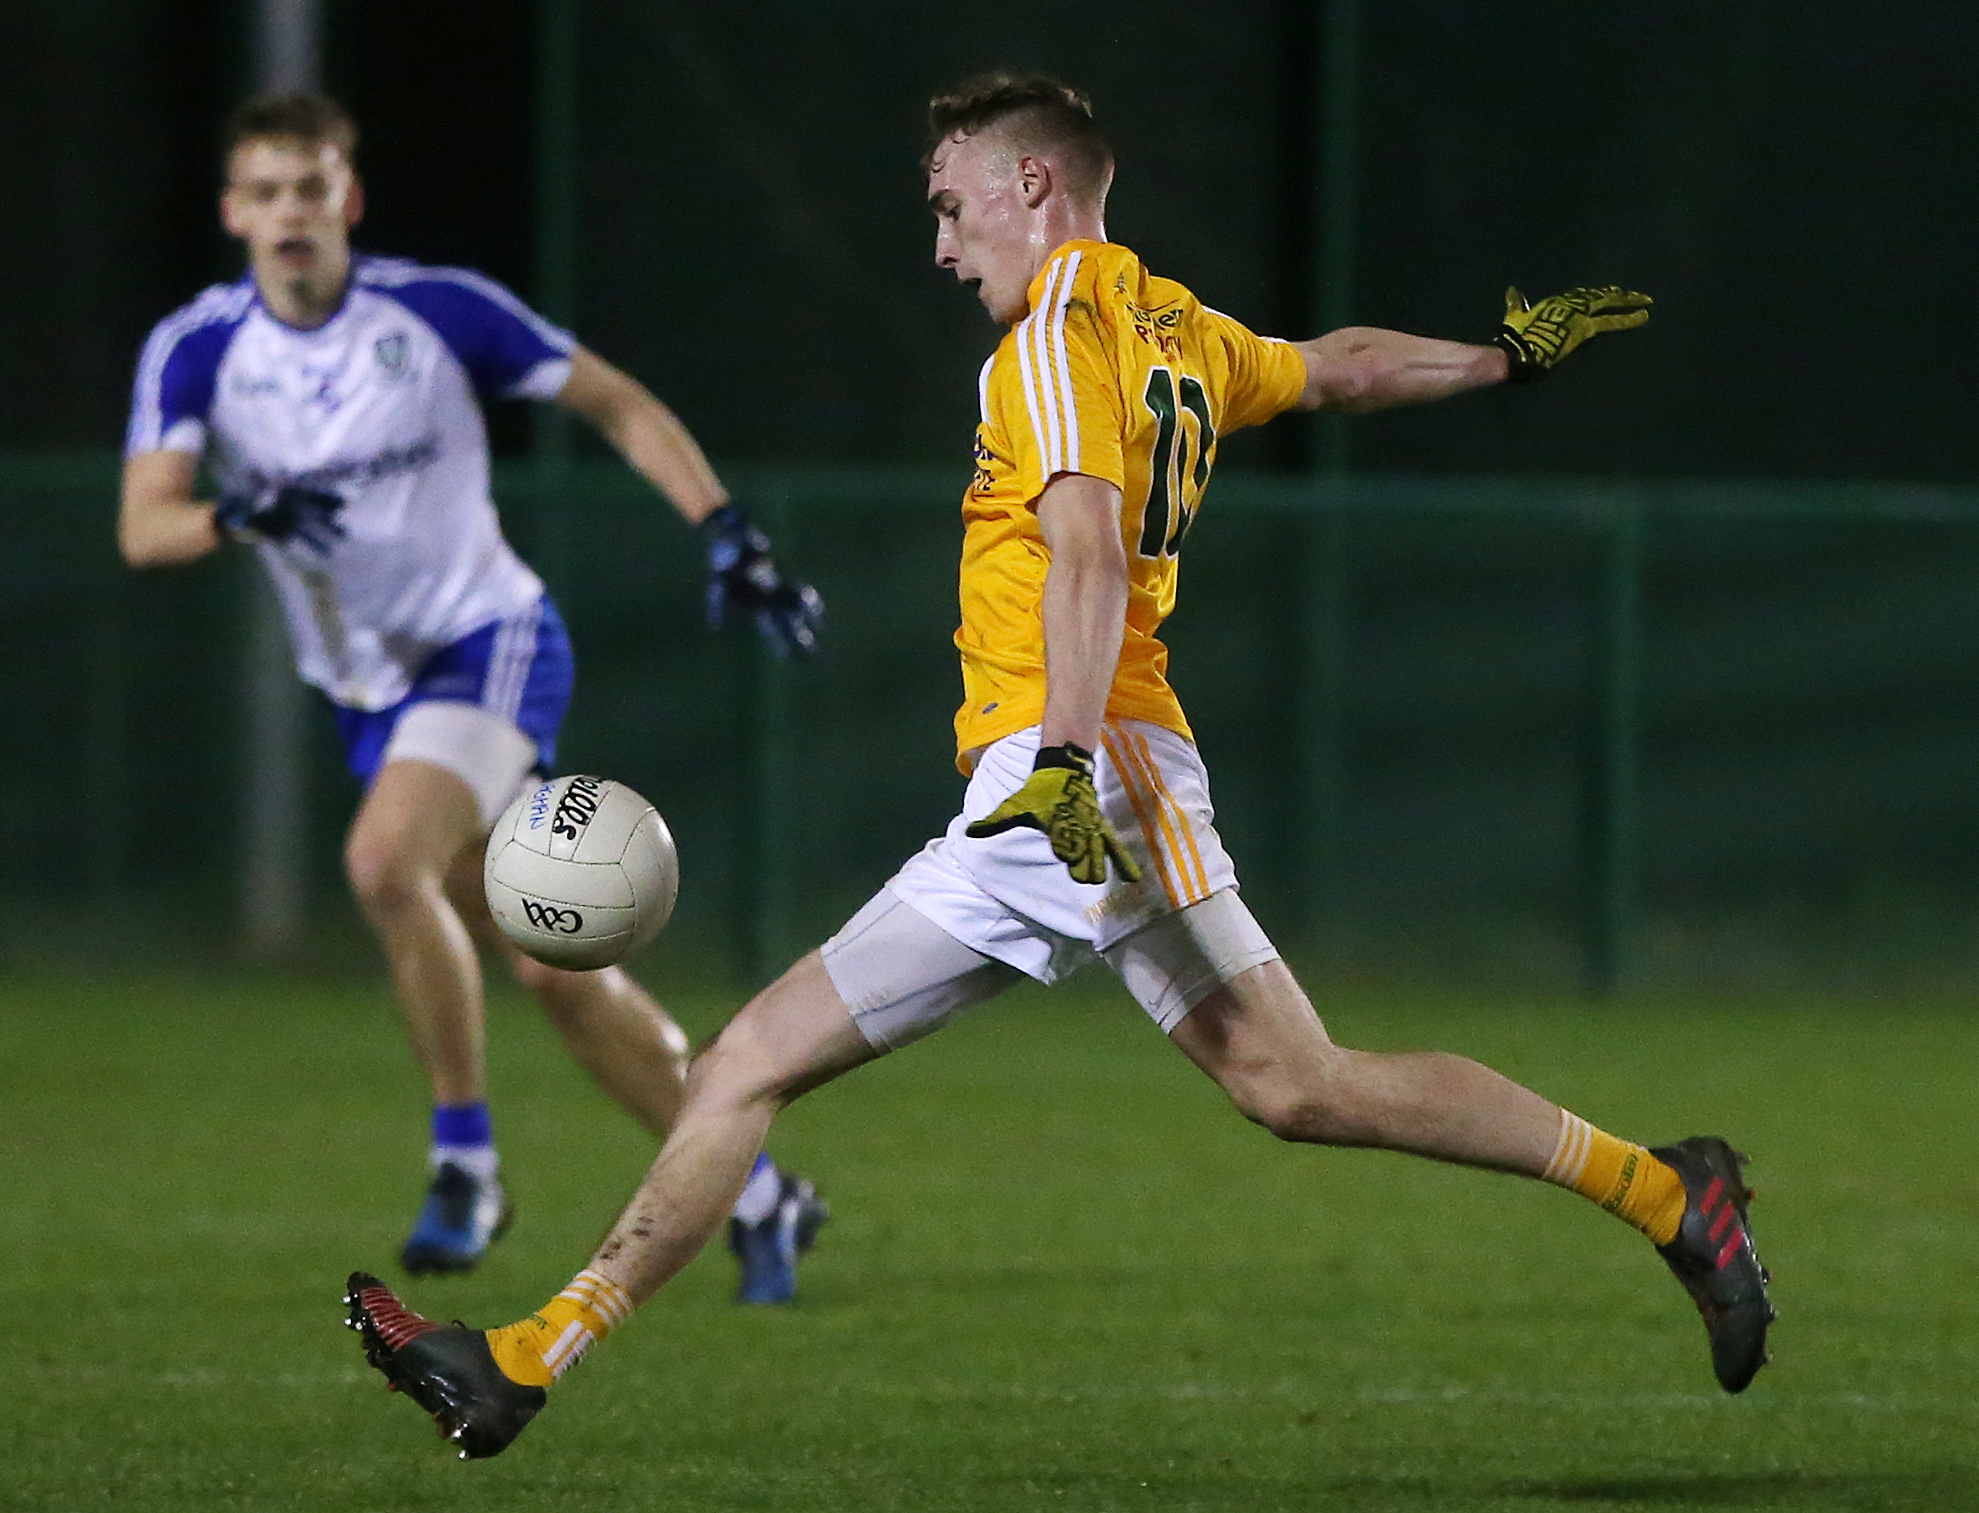 Antrim's Seamus McGarry could be in line to make his senior NFL debut against Laois this Sunday after scoring 0-8 in last week's U21 Football Championship loss to Monaghan\nUlster U21 Championship.  Antrim Vs Monaghan at QUB\'s Dub pitches in South Belfast. \n\nAntrim\'s Seamus McGarry lays the ball up to score a point. \n\nPhoto by Jonathan Porter / Press Eye.